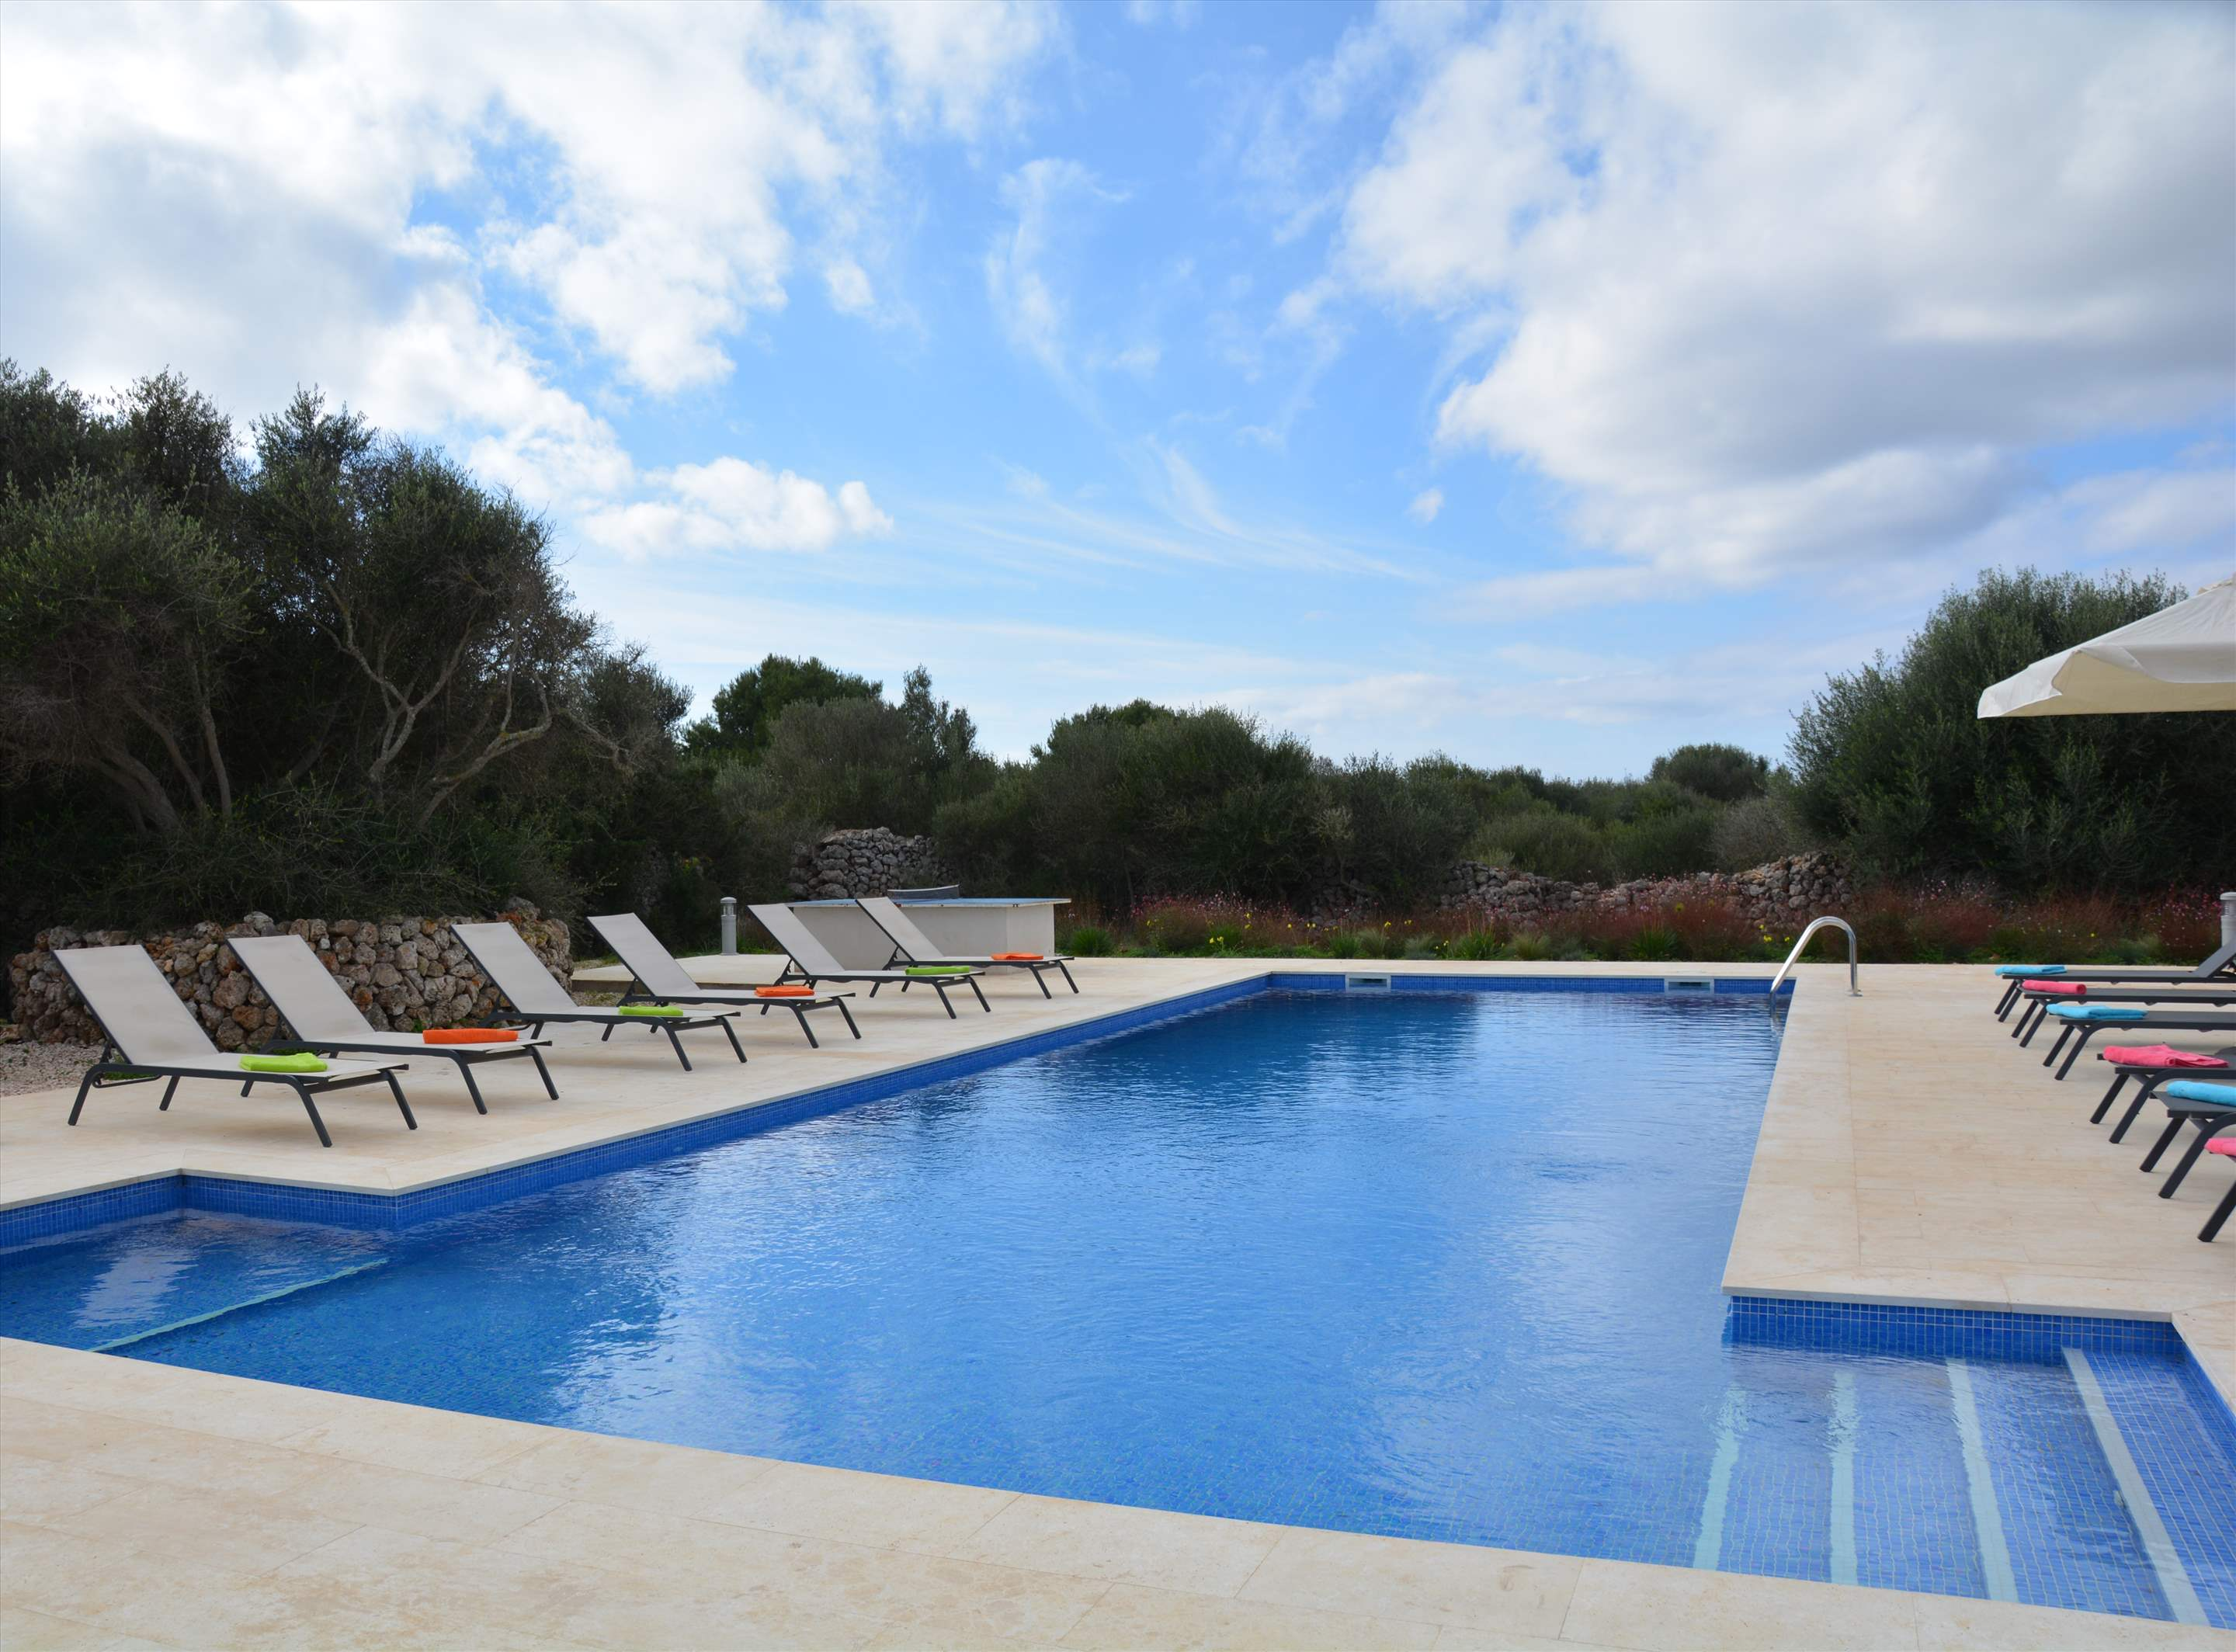 Les Arcs, 5 bedroom villa in Mahon, San Luis & South East, Menorca Photo #11